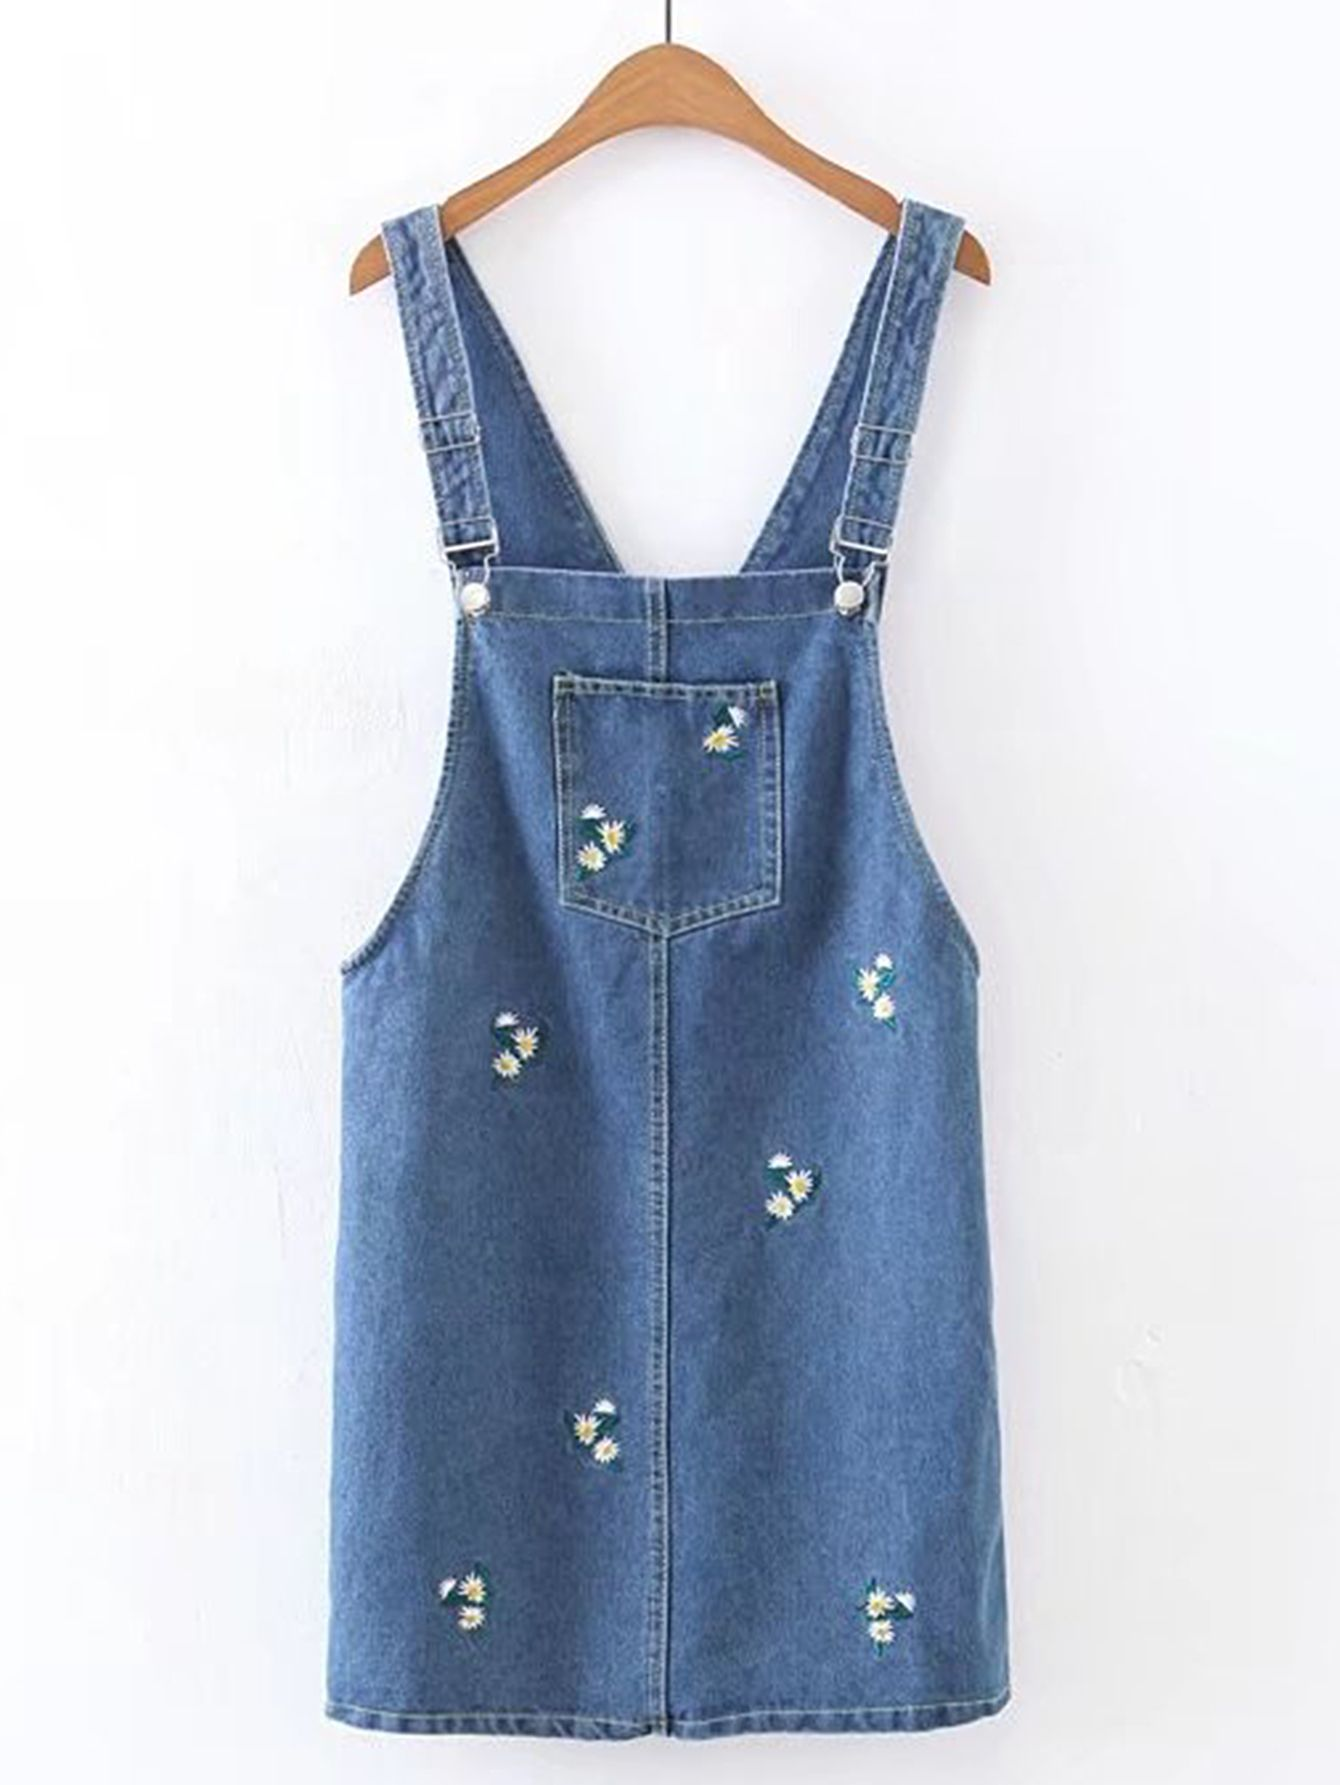 d23b7e8c17 Shop Flower Embroidery Denim Overall Dress online. SheIn offers Flower  Embroidery Denim Overall Dress   more to fit your fashionable needs.